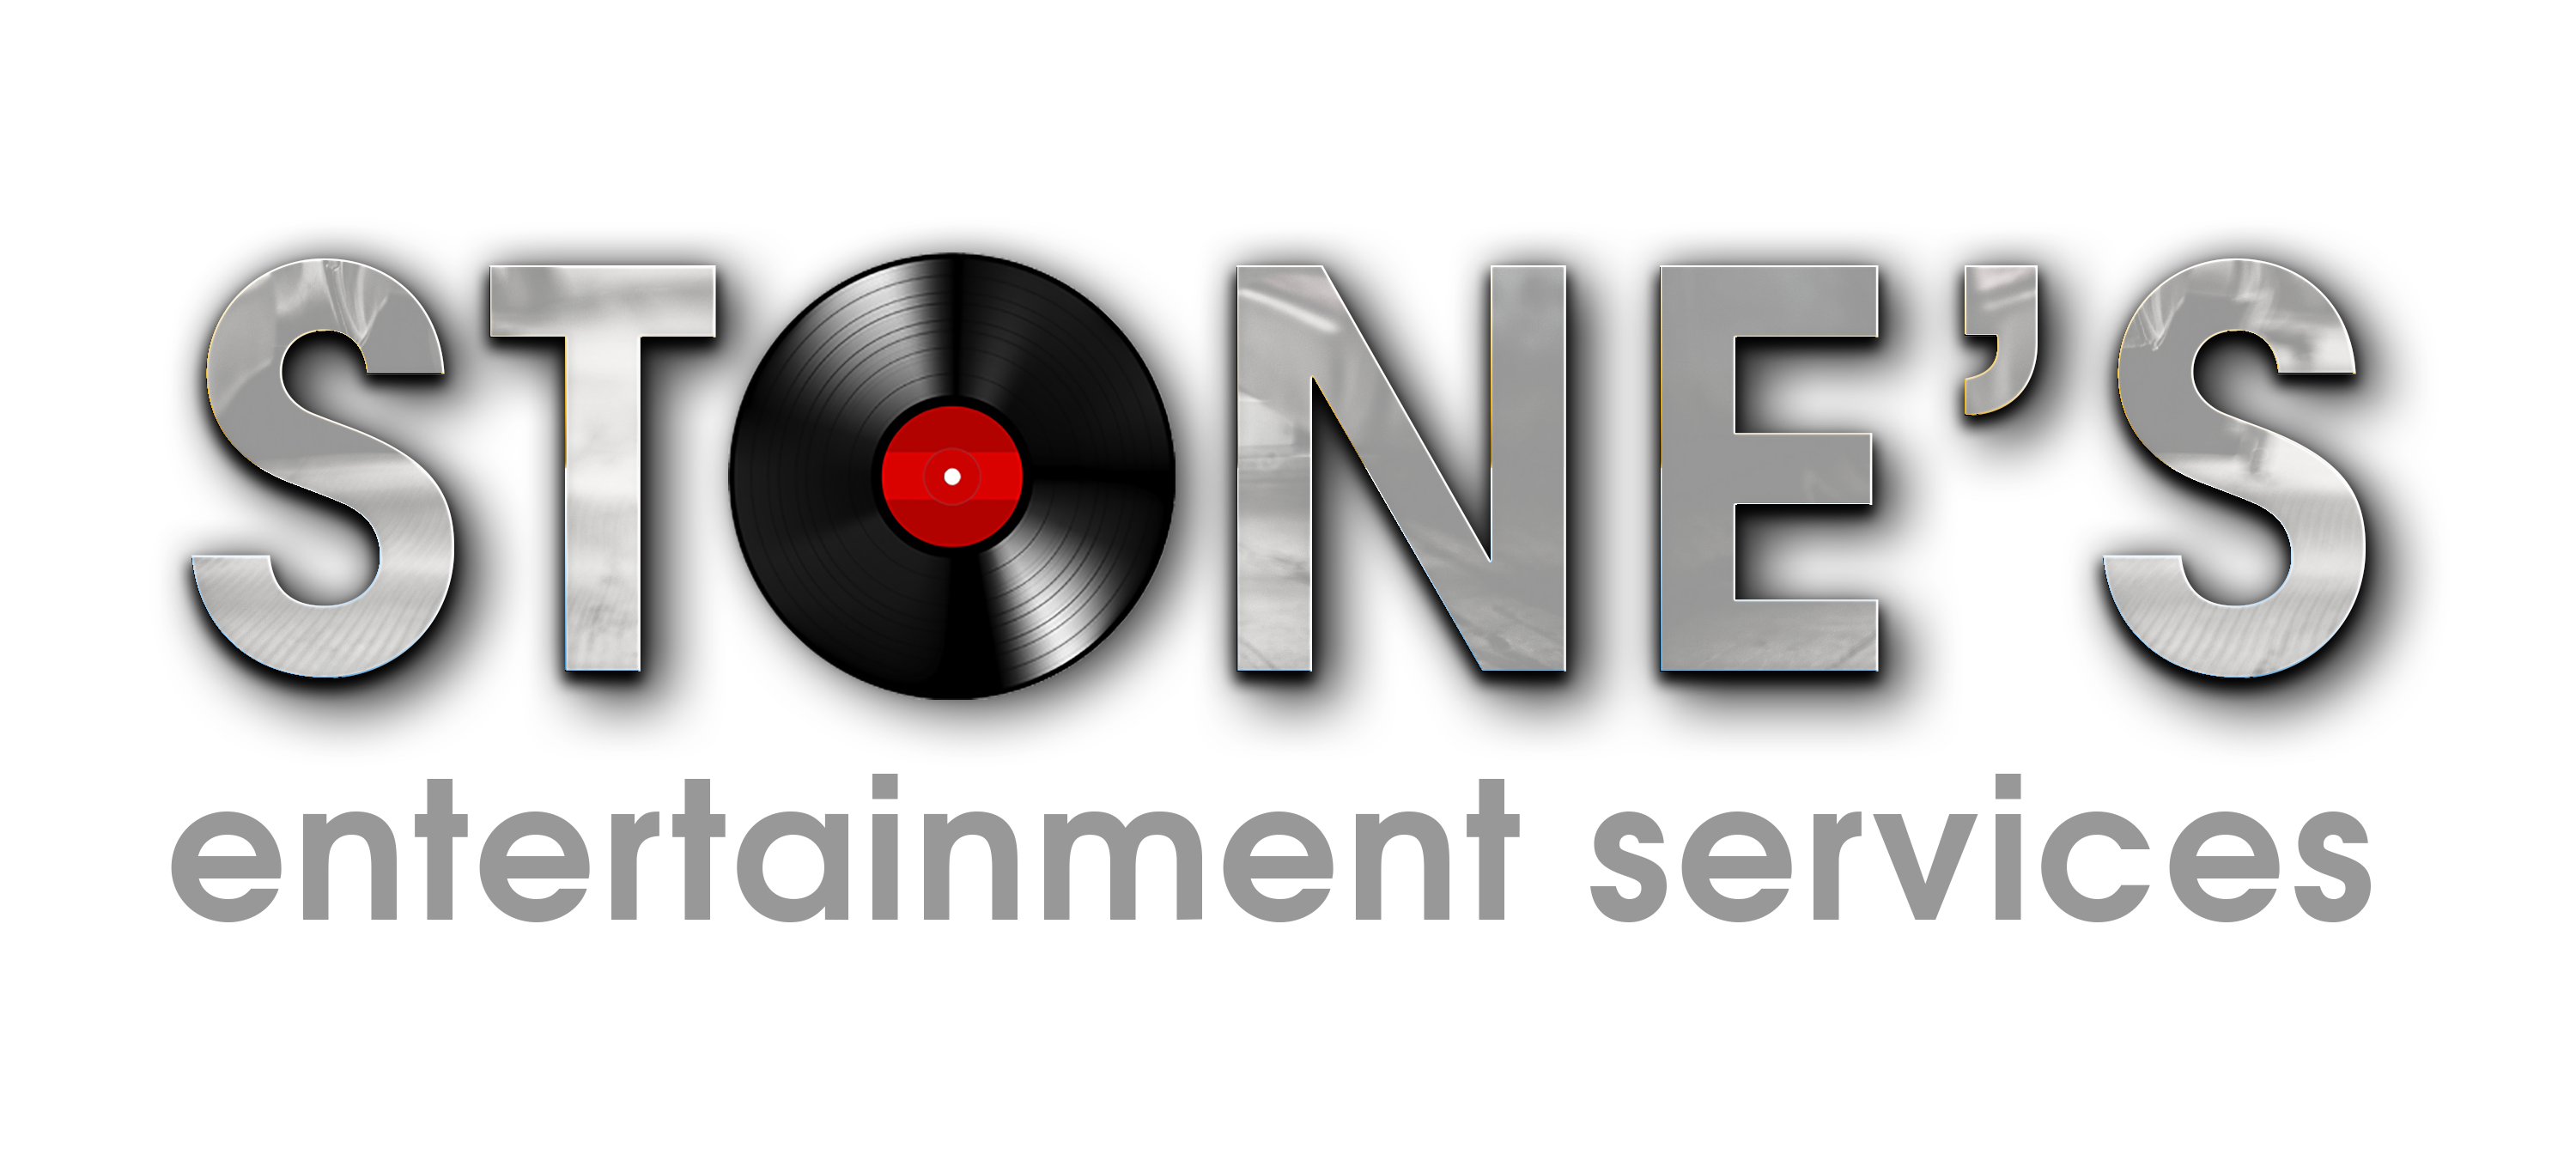 Stone`s Entertainment Services